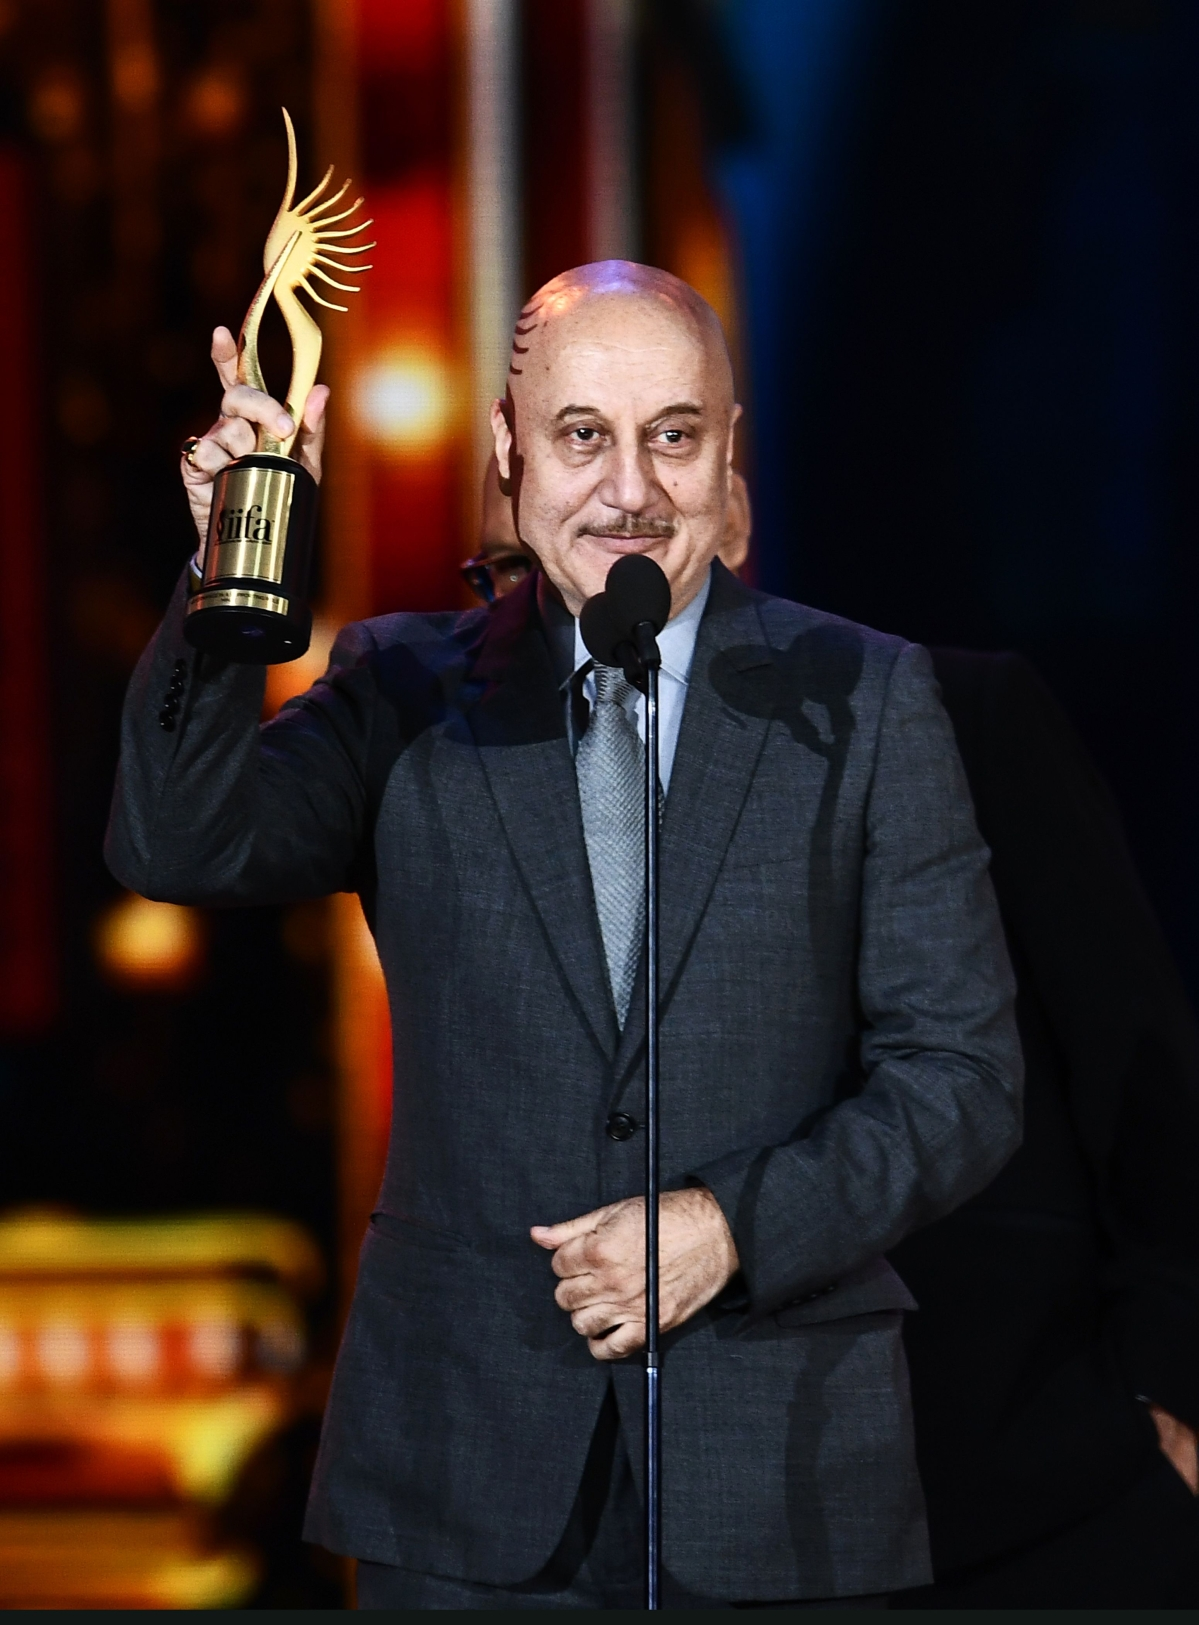 """Winner of Performance in a Supporting Role – Male, Bollywood actor Anupam Kher for """"M.S. Dhoni"""" accepts the award during 18th International Indian Film Academy (IIFA) Festival at the MetLife Stadium in East Rutherford, New Jersey, on July 15, 2017. / AFP PHOTO / JEWEL SAMAD"""